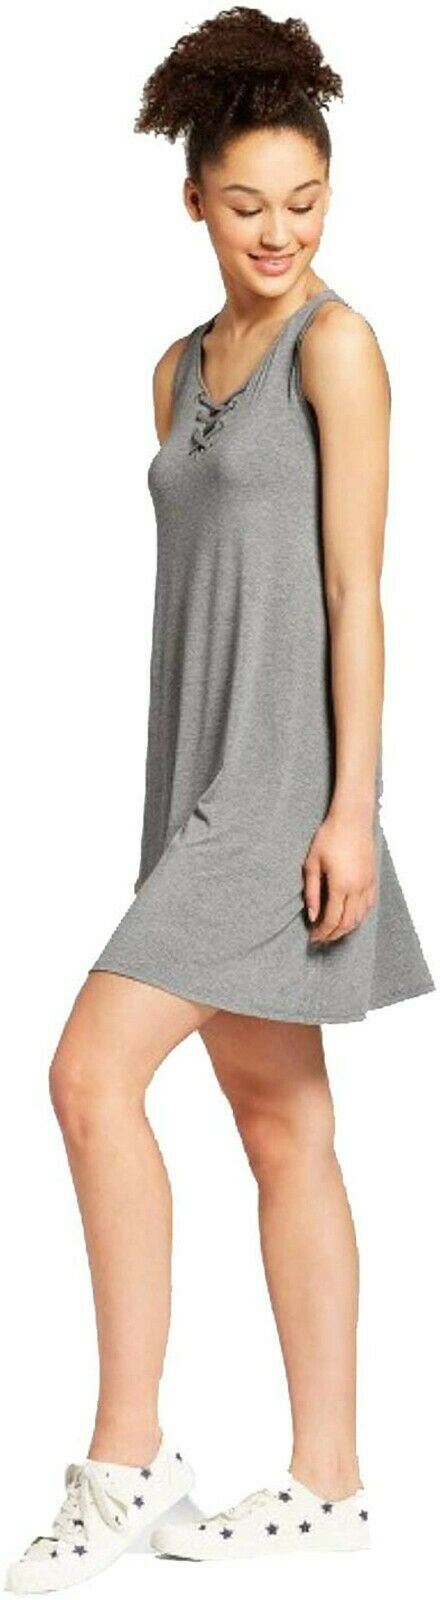 Mossimo Supply Co. Women's Lace-Up Sleeveless Dress – Gray -S Clothing, Shoes & Accessories